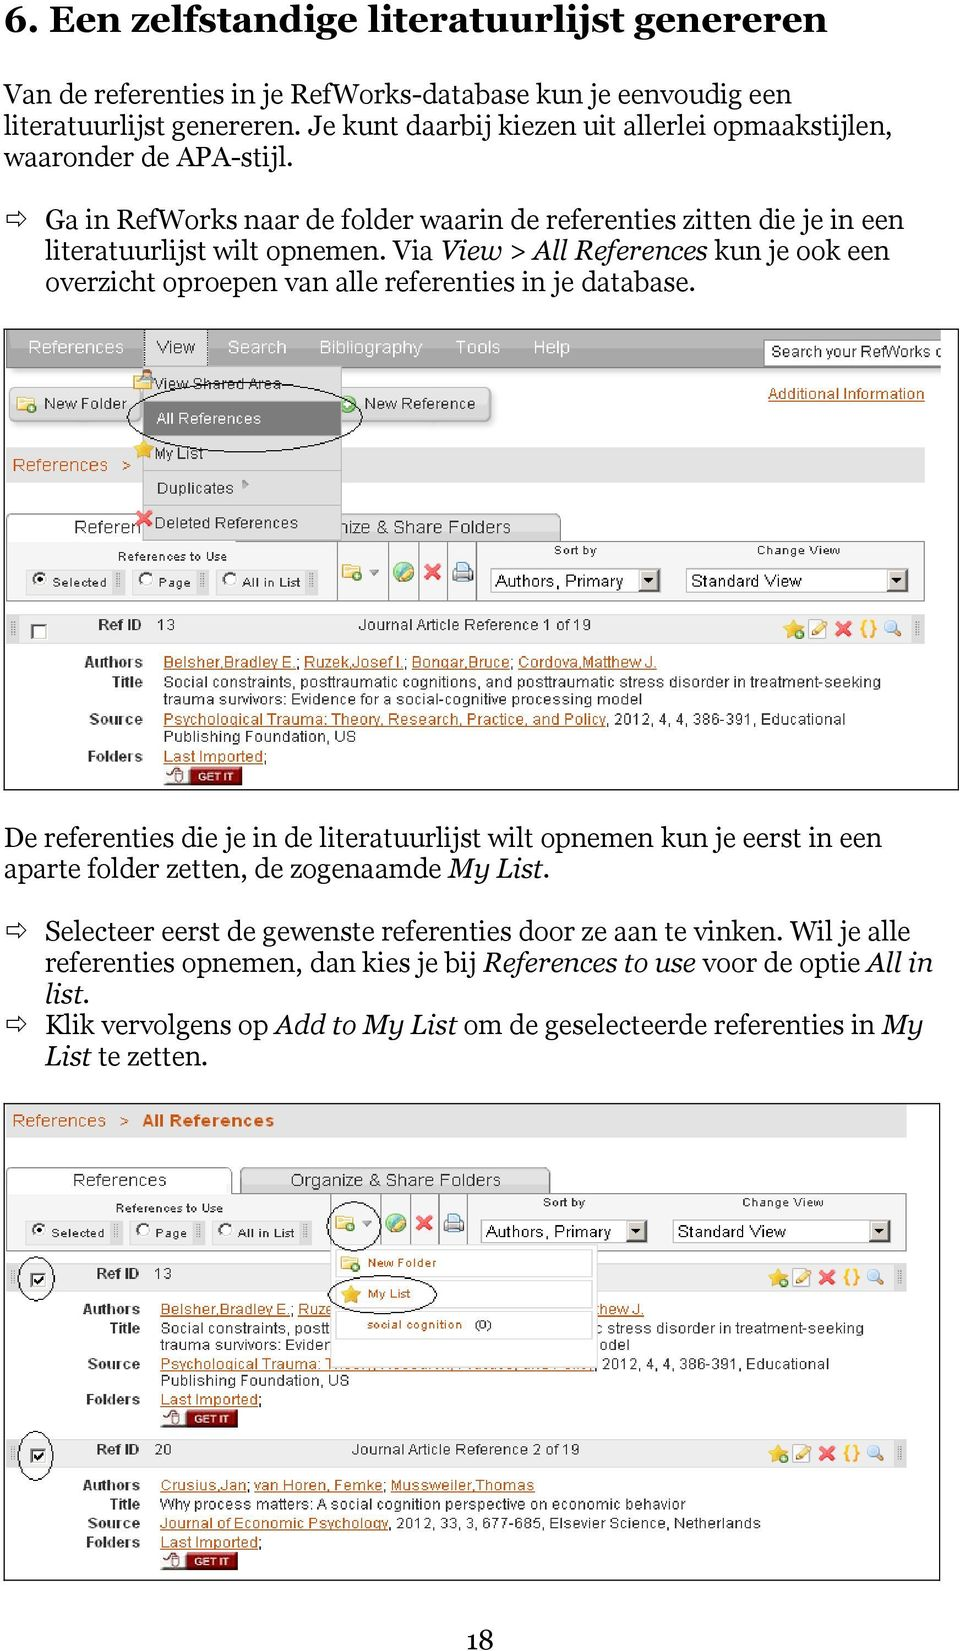 Via View > All References kun je ook een overzicht oproepen van alle referenties in je database.